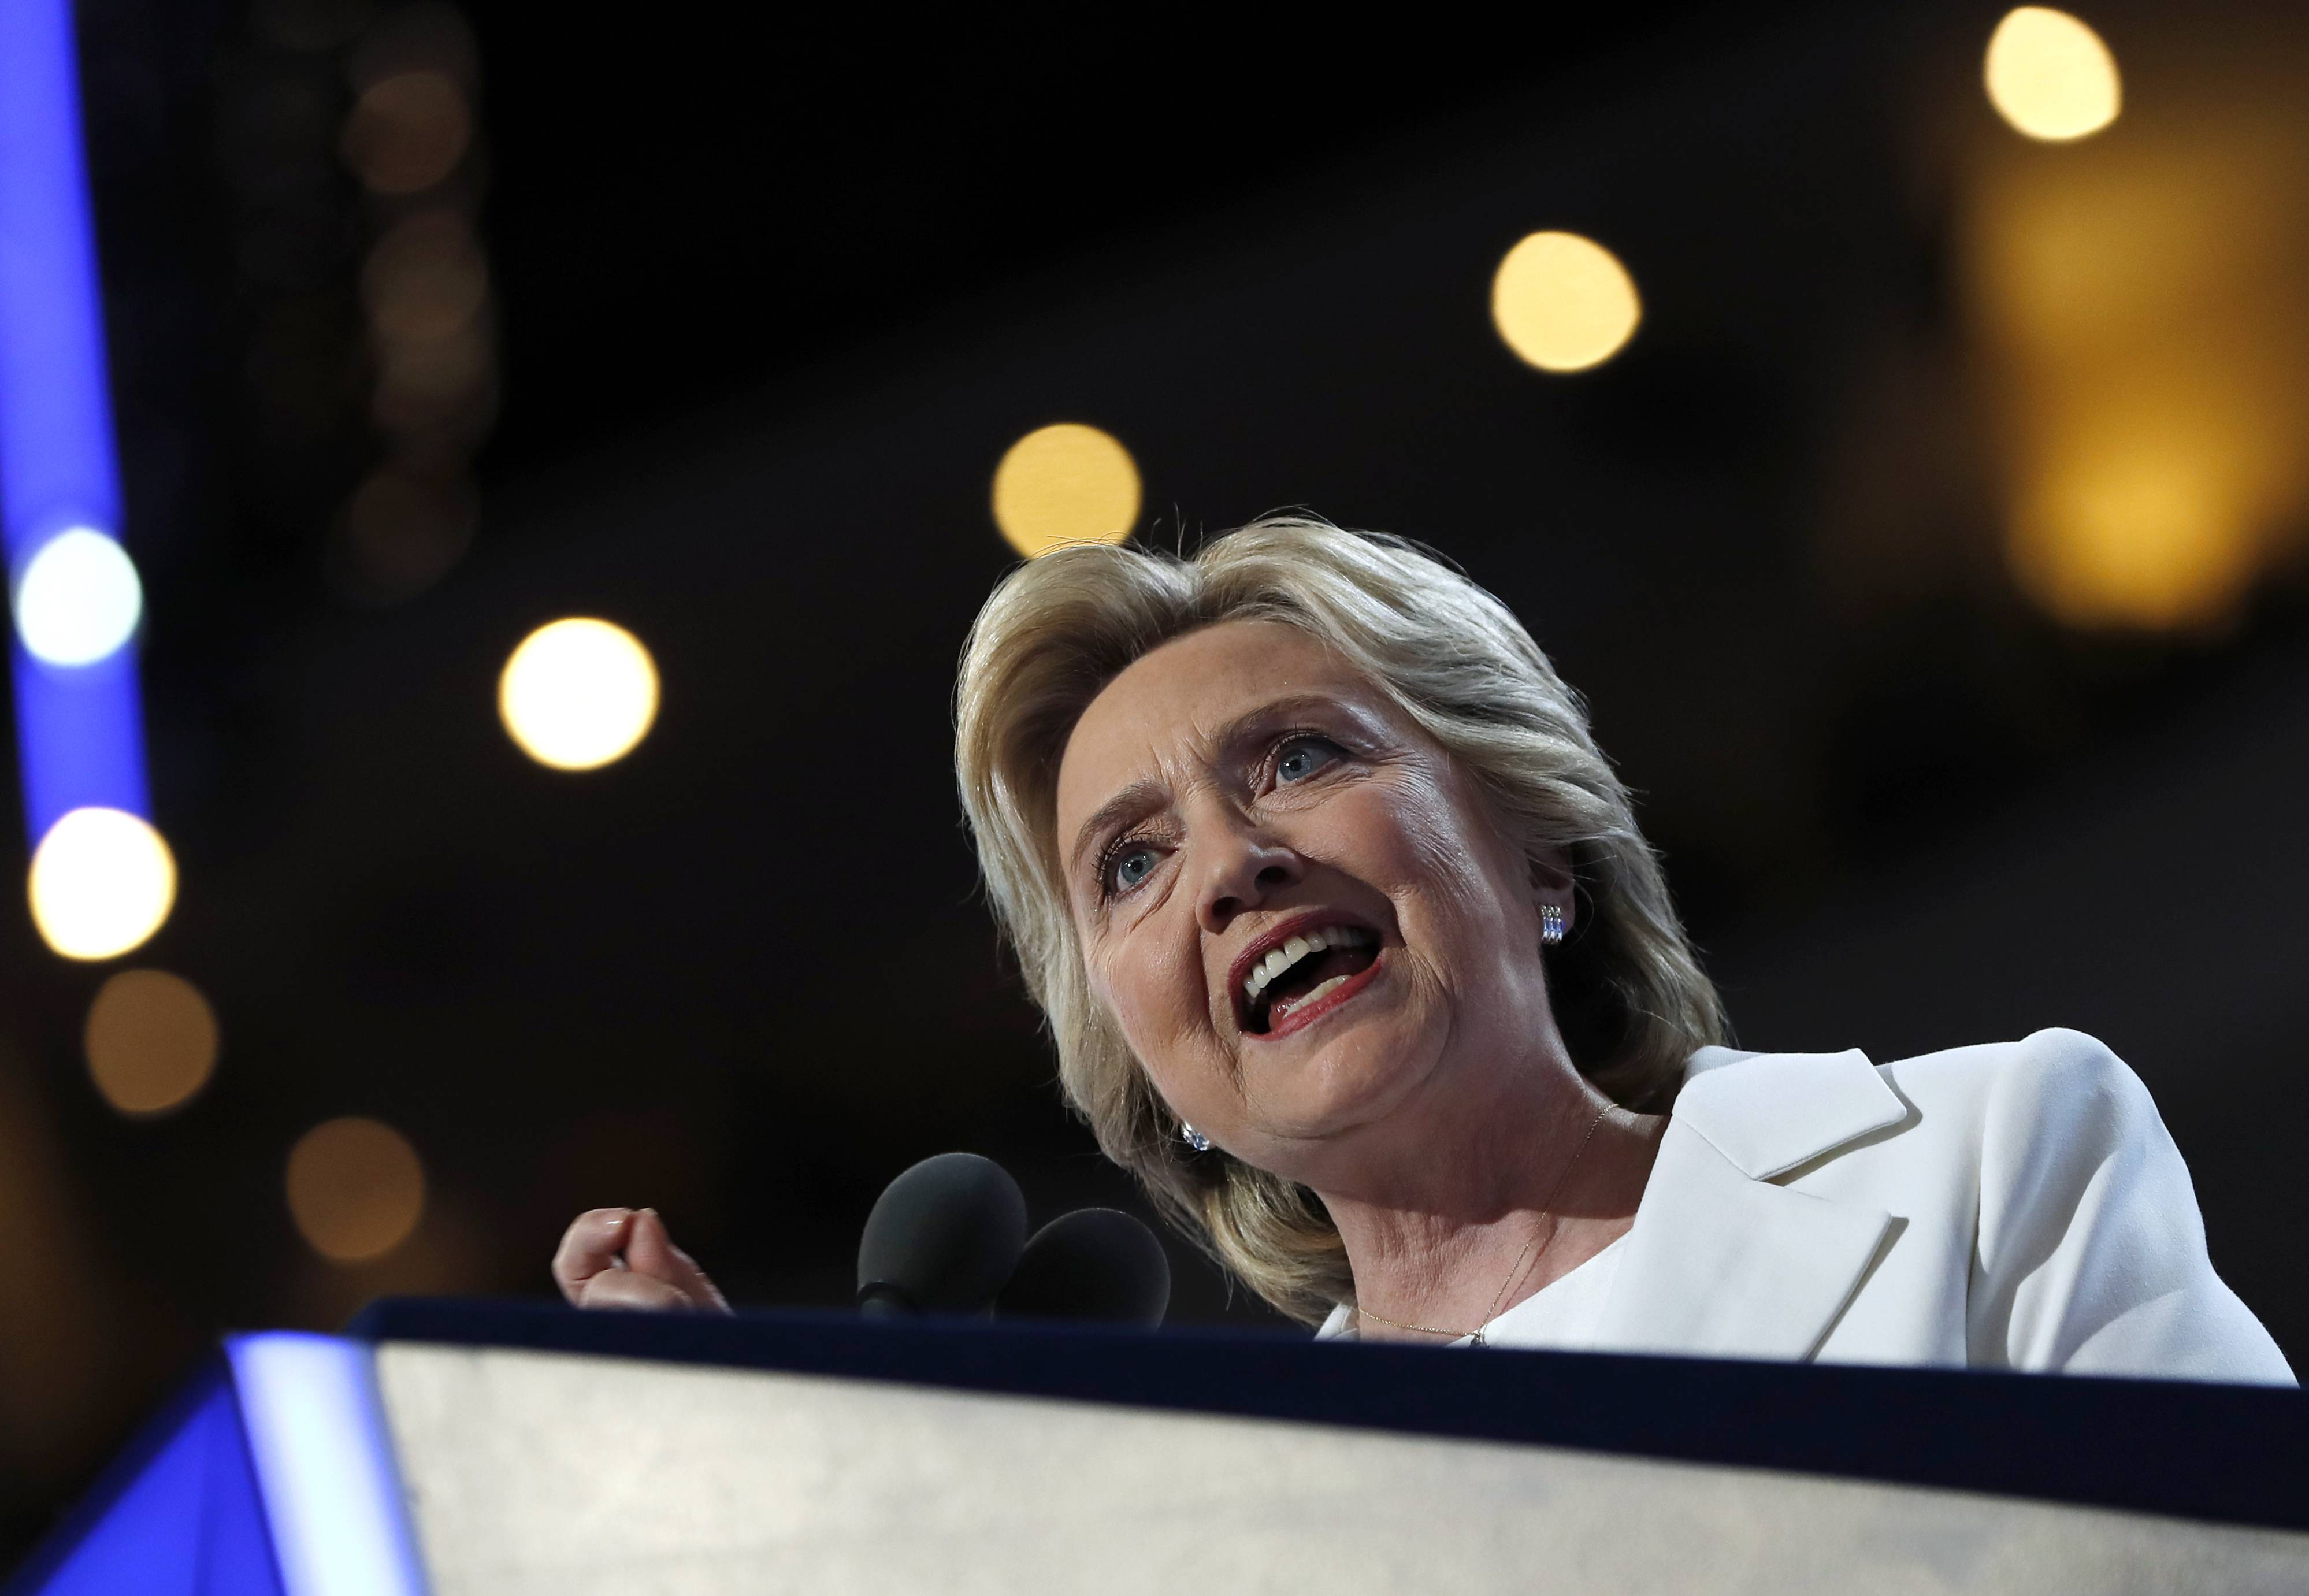 Democratic presidential nominee Hillary Clinton speaks during the final day of the Democratic National Convention in Philadelphia, Thursday, July 28, 2016.